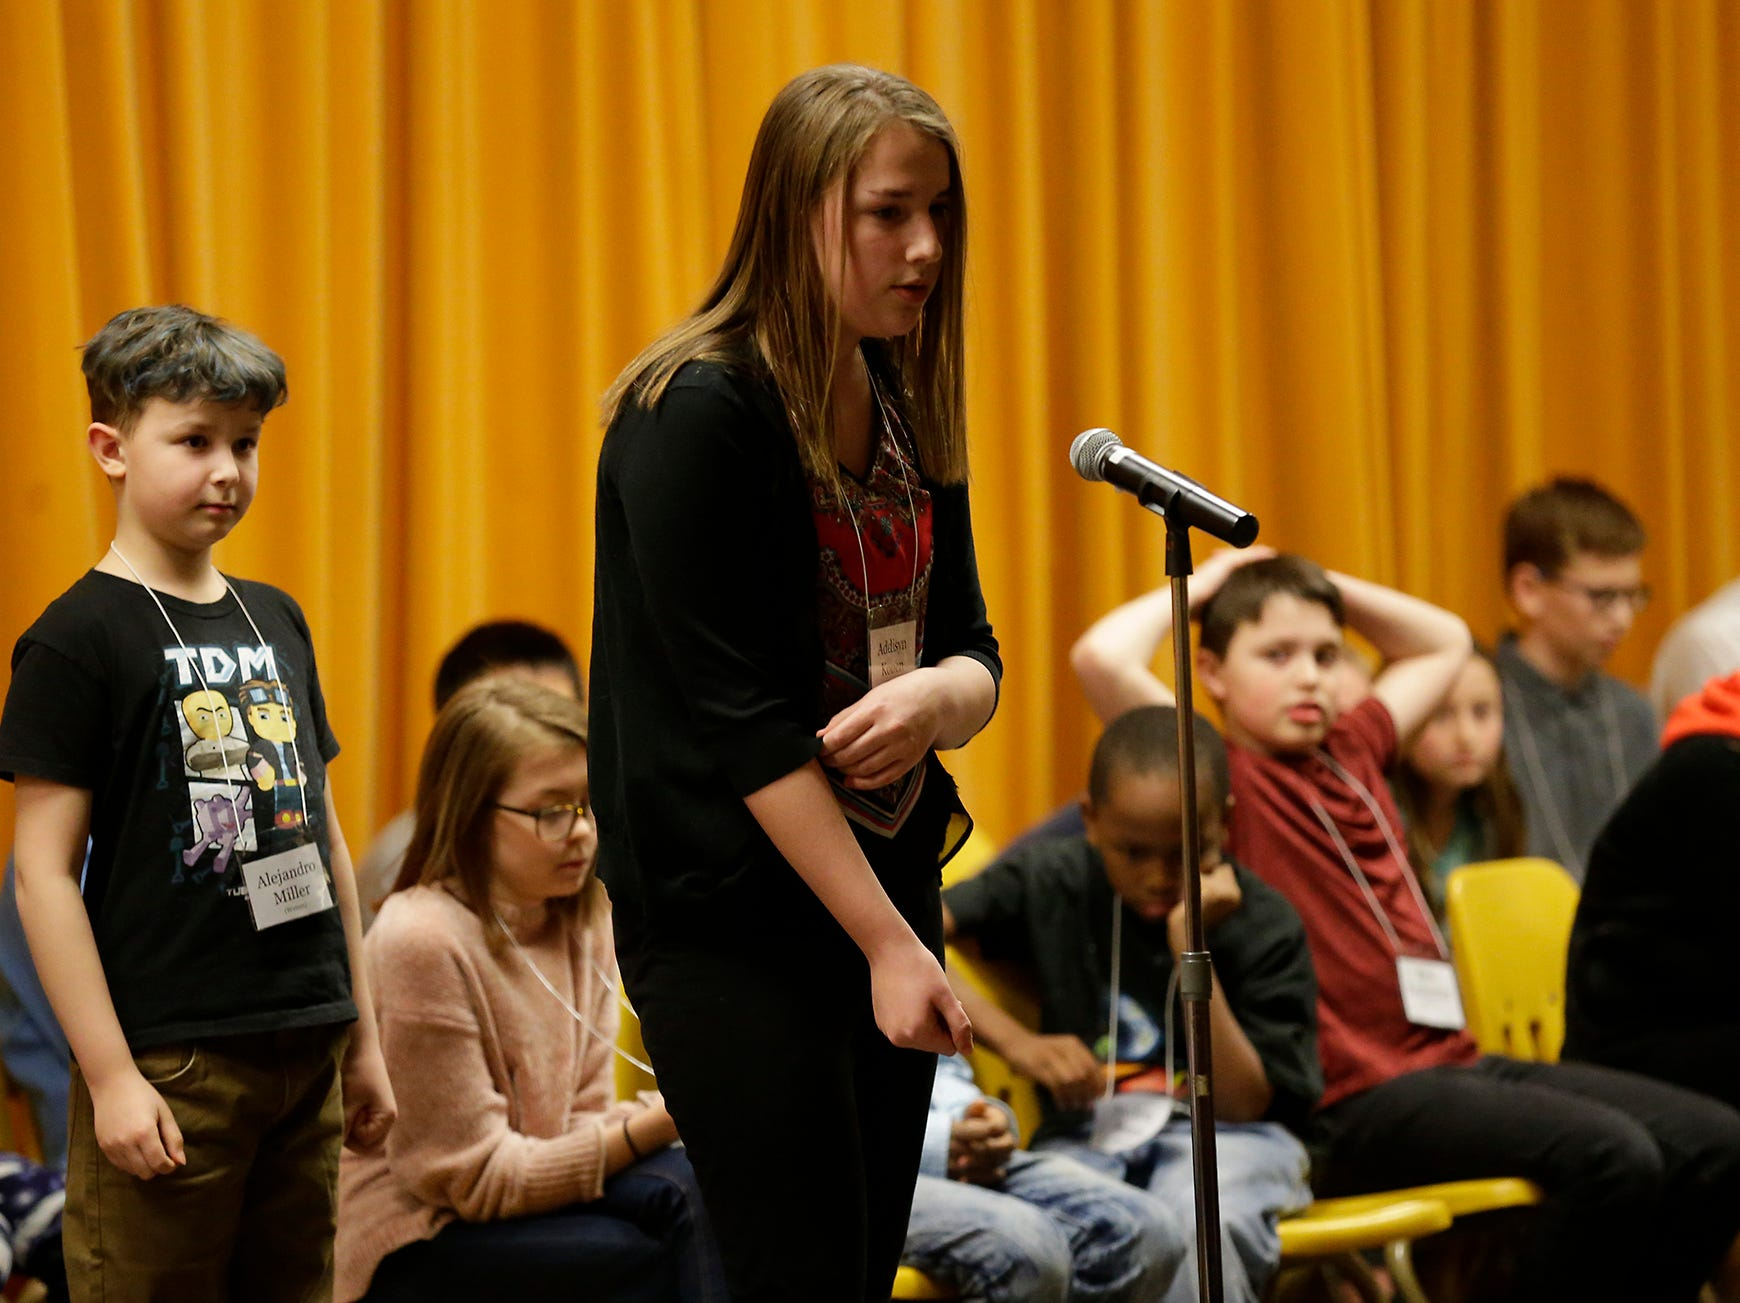 Addison Konen of Theisen Middle School competes in the Fond du Lac citywide spelling bee Tuesday, February 26, 2019 at These Middle School in Fond du Lac, Wis. Doug Raflik/USA TODAY NETWORK-Wisconsin